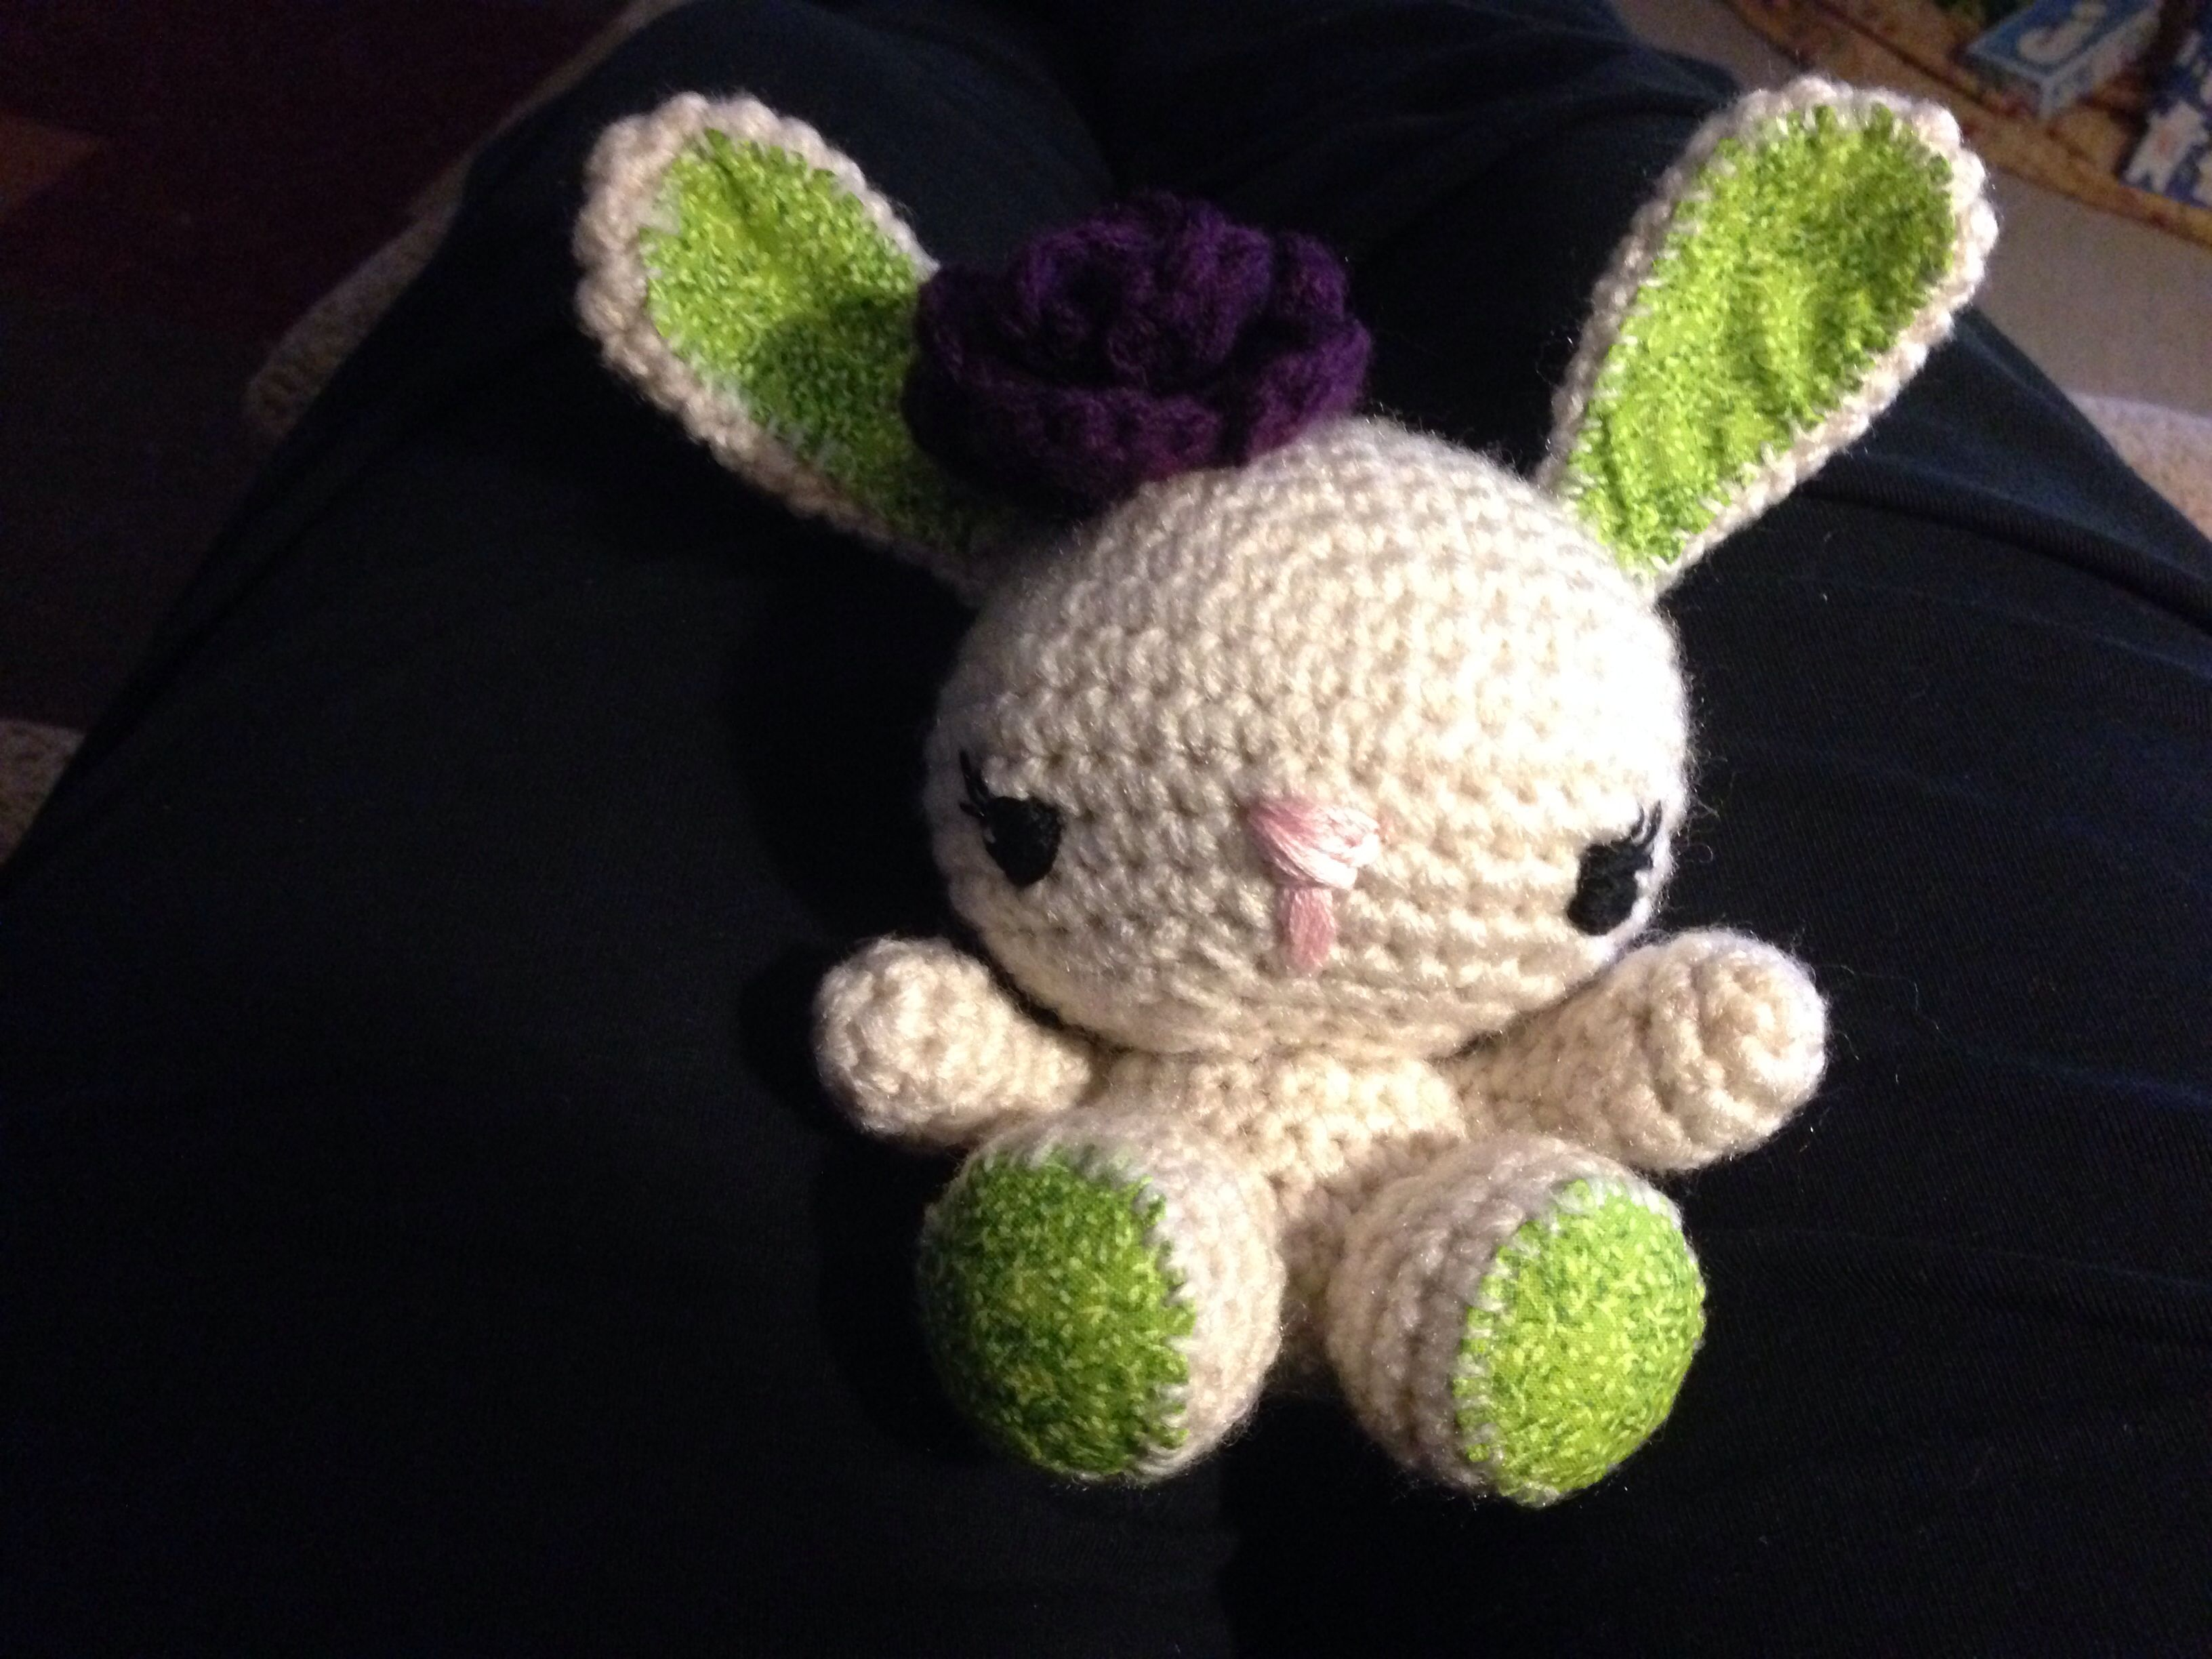 Another version of the bunny